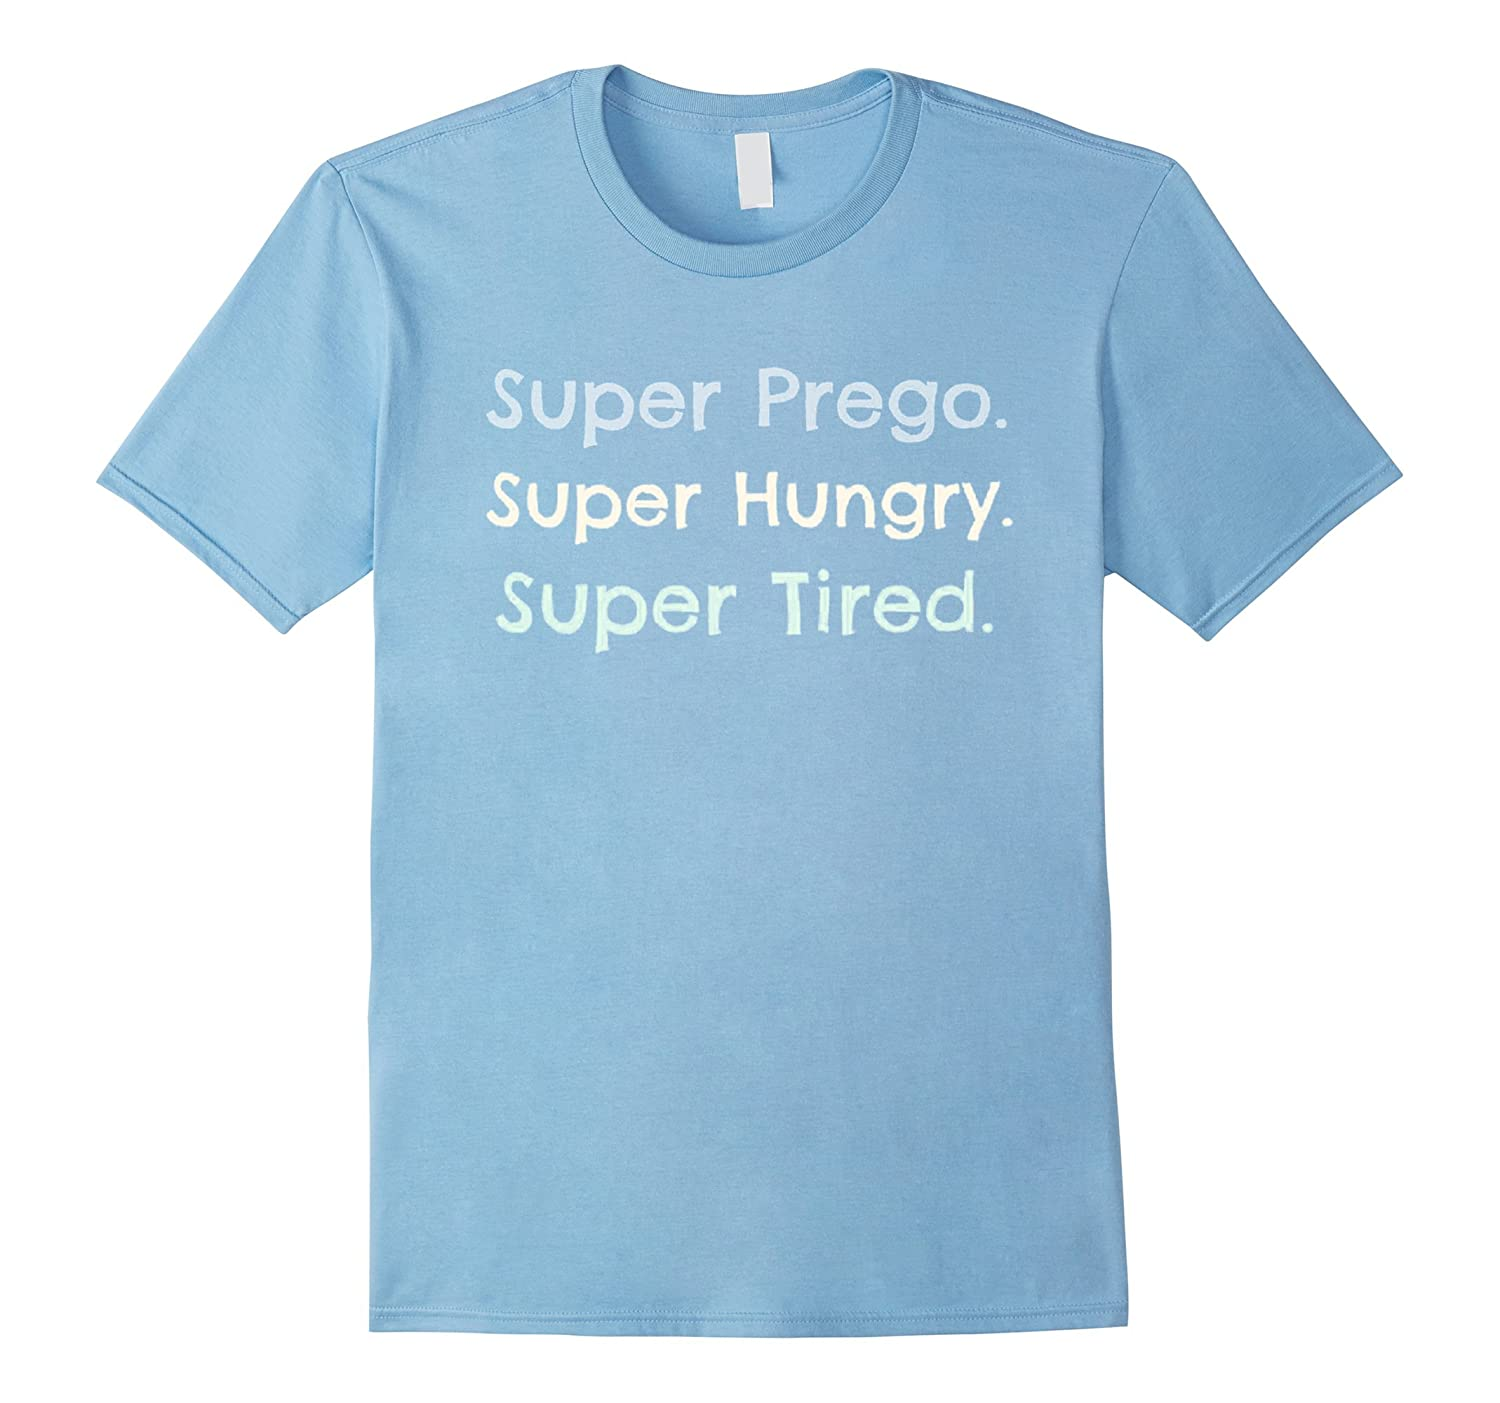 563e13426d732 Super Prego Hungry Tired Pregnancy Baby Shower Mothers Day-RT ...